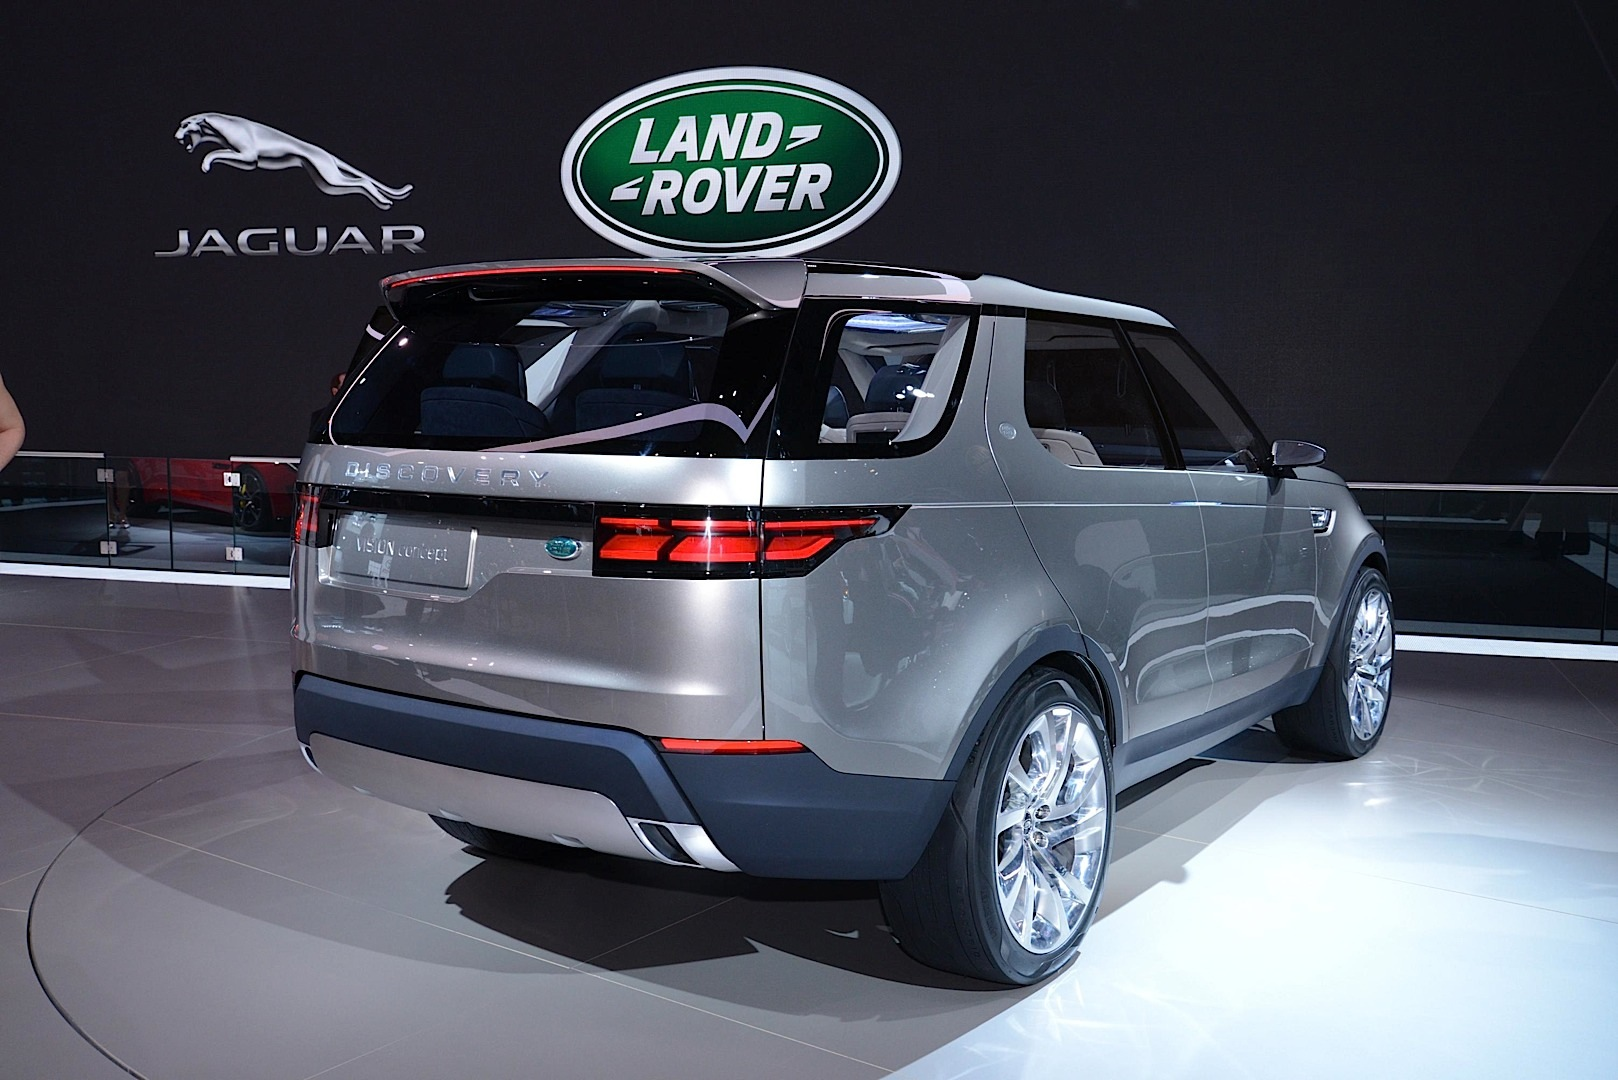 https://s1.cdn.autoevolution.com/images/news/gallery/land-rover-discovery-vision-concept-offroading-in-new-york-live-photos_4.jpg